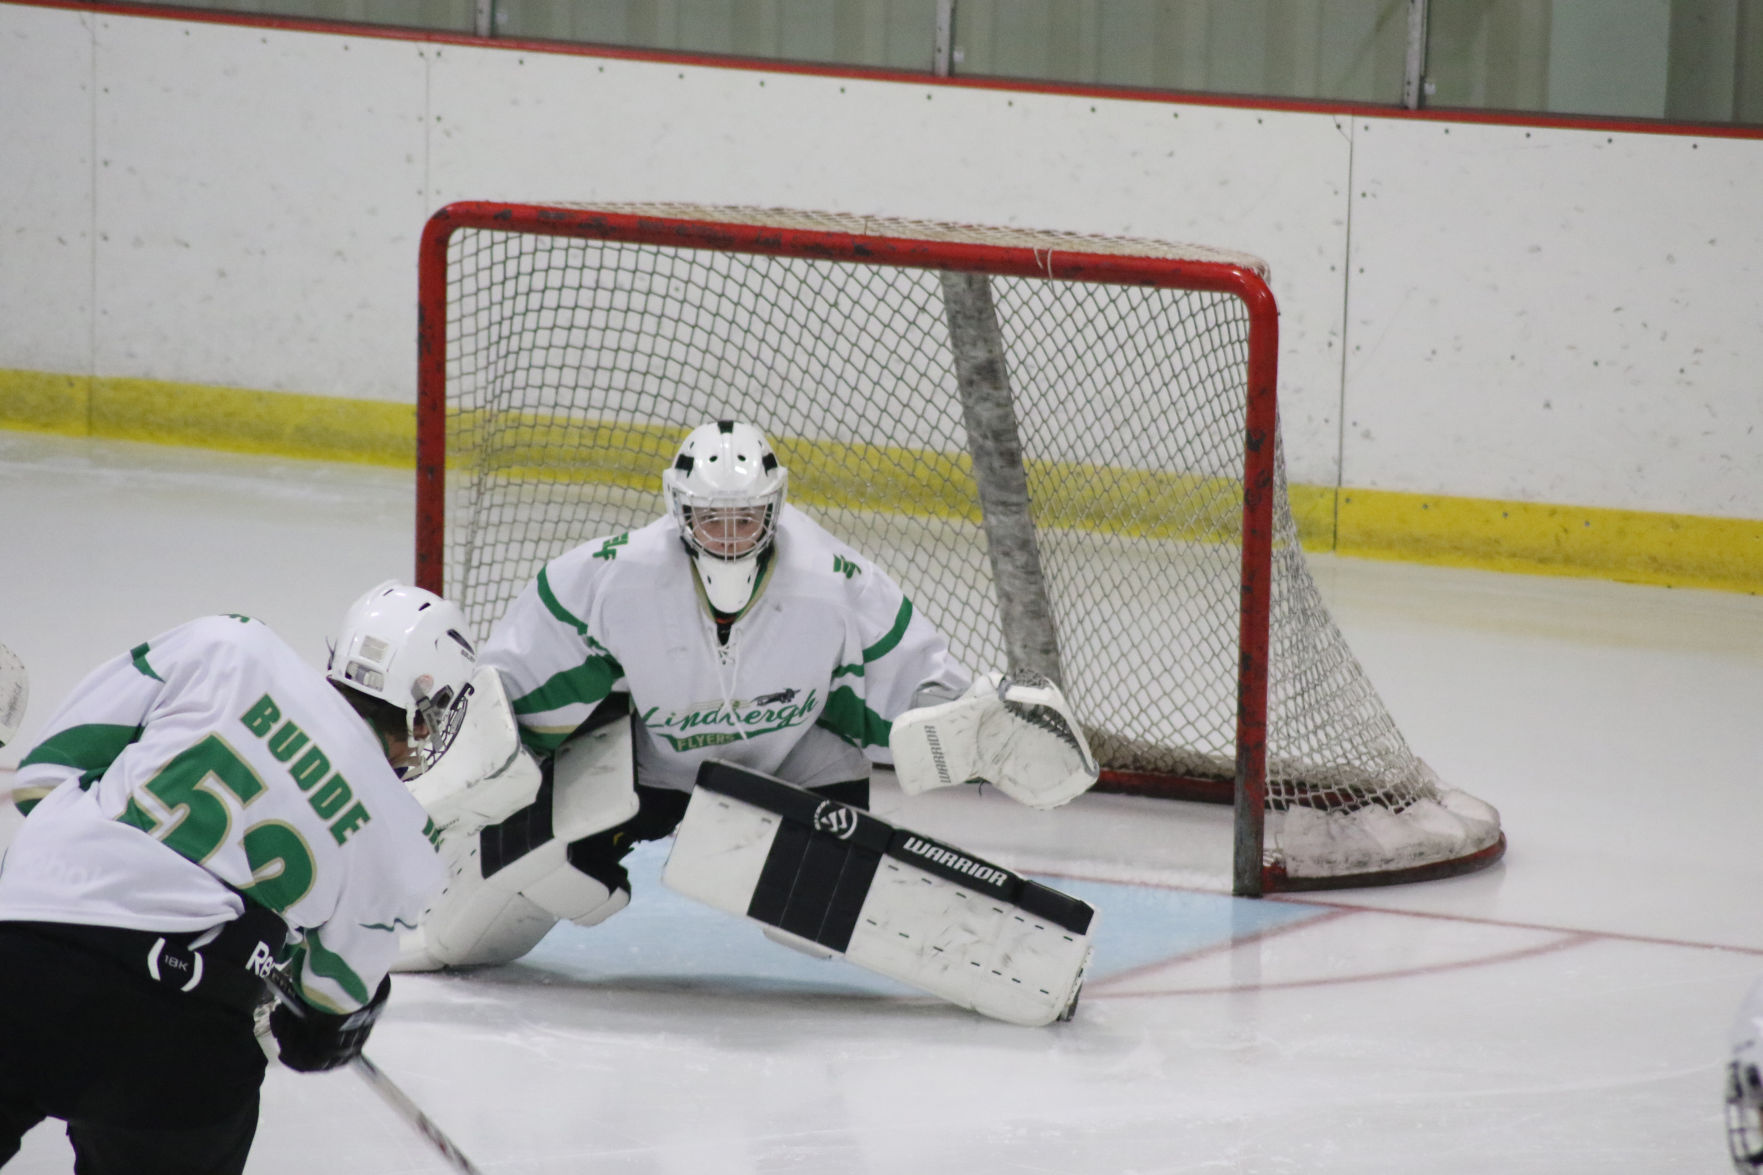 MO H.S.: Leasck's Maturity Helps Lindbergh On And Off The Ice